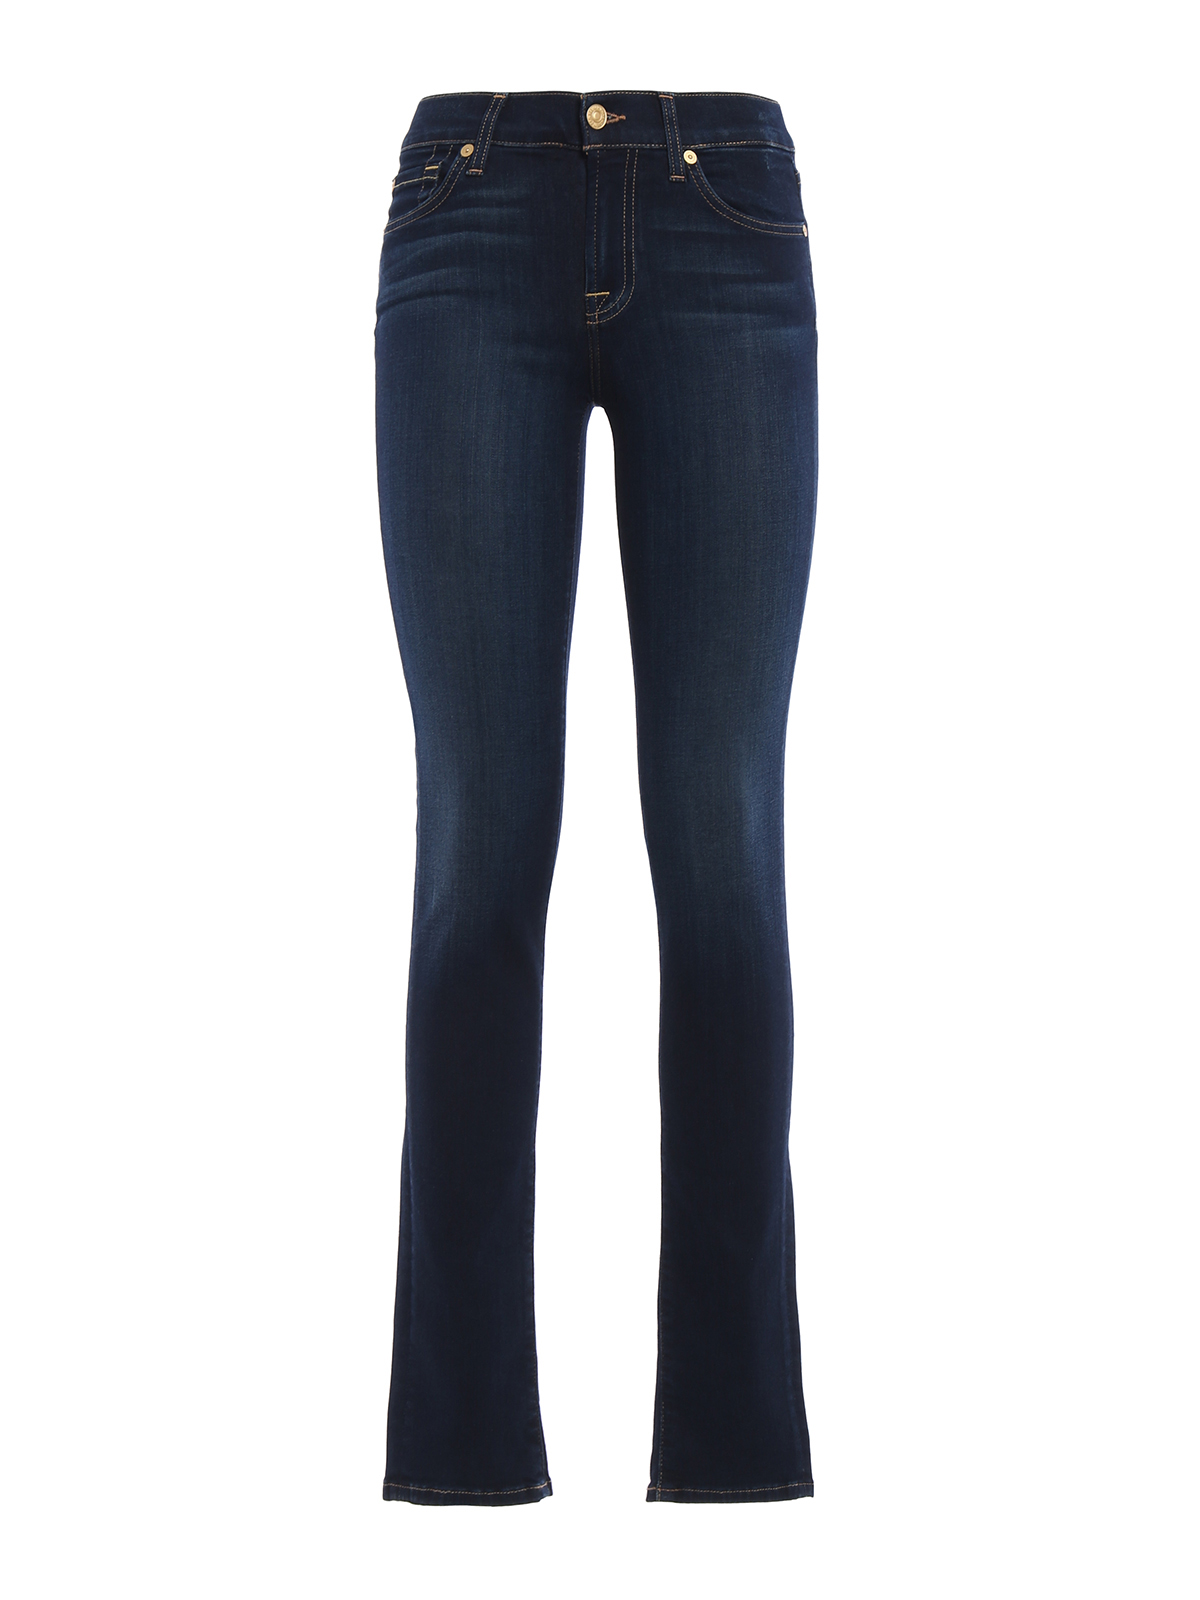 the slim roxanne jeans by 7 for all mankind skinny jeans. Black Bedroom Furniture Sets. Home Design Ideas